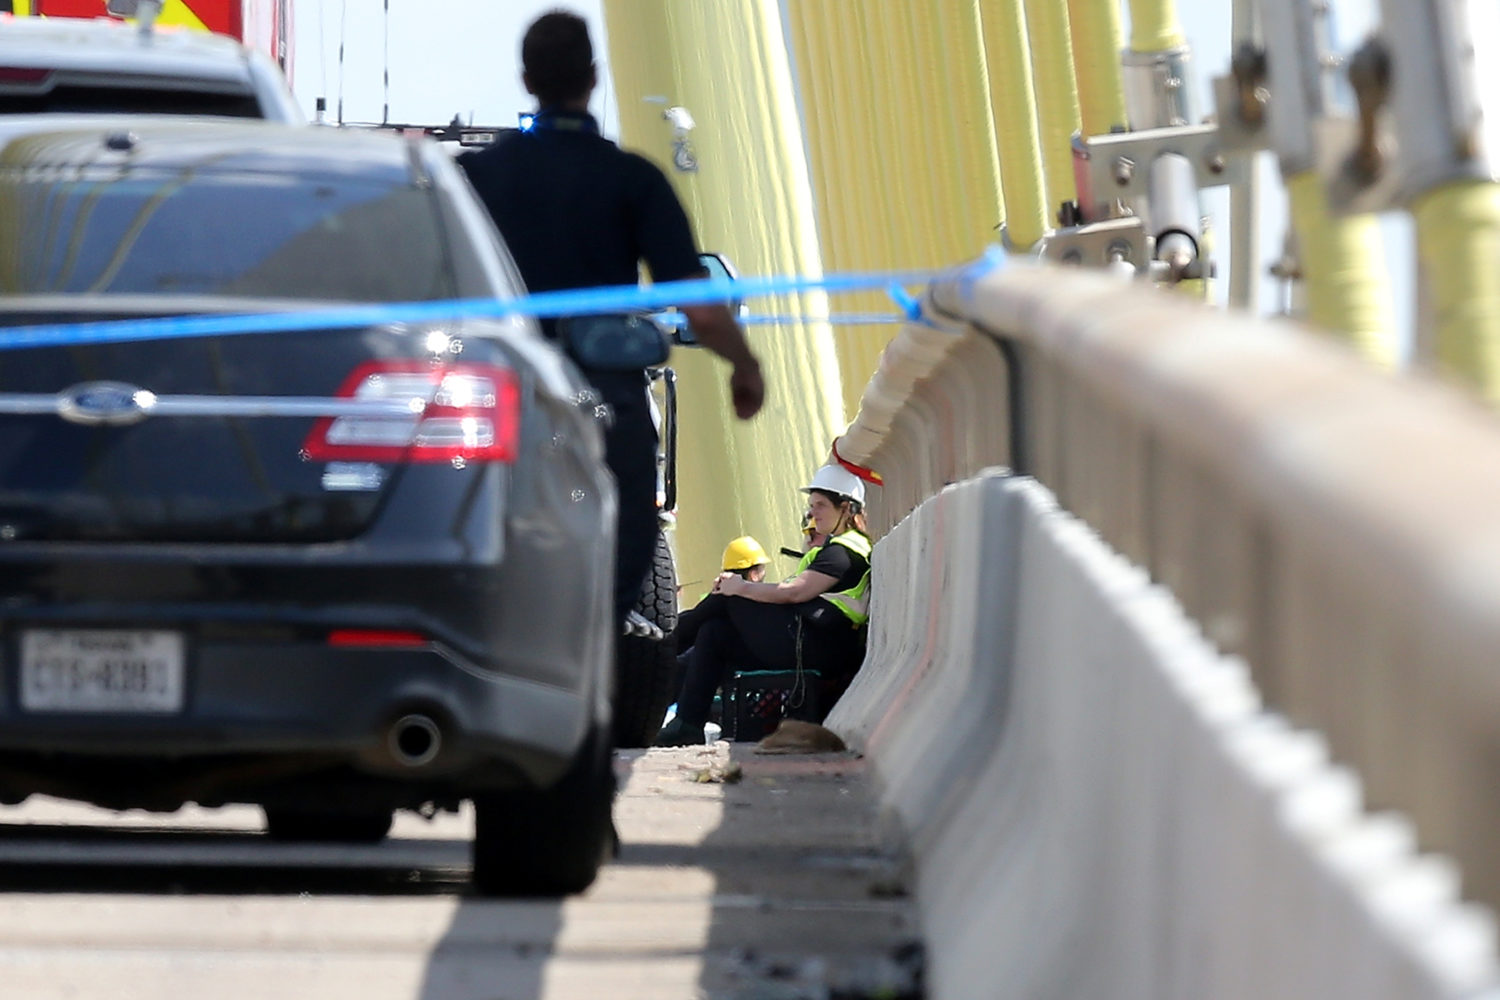 FILE PHOTO: Greenpeace USA climbers form a blockade on the Fred Hartman Bridge, shutting down the Houston Ship Channel, the largest fossil fuel thoroughfare in the United States, ahead of the third Democratic primary debate in nearby Houston, near Baytown, Texas, U.S. September 12, 2019. REUTERS/Jonathan Bachman